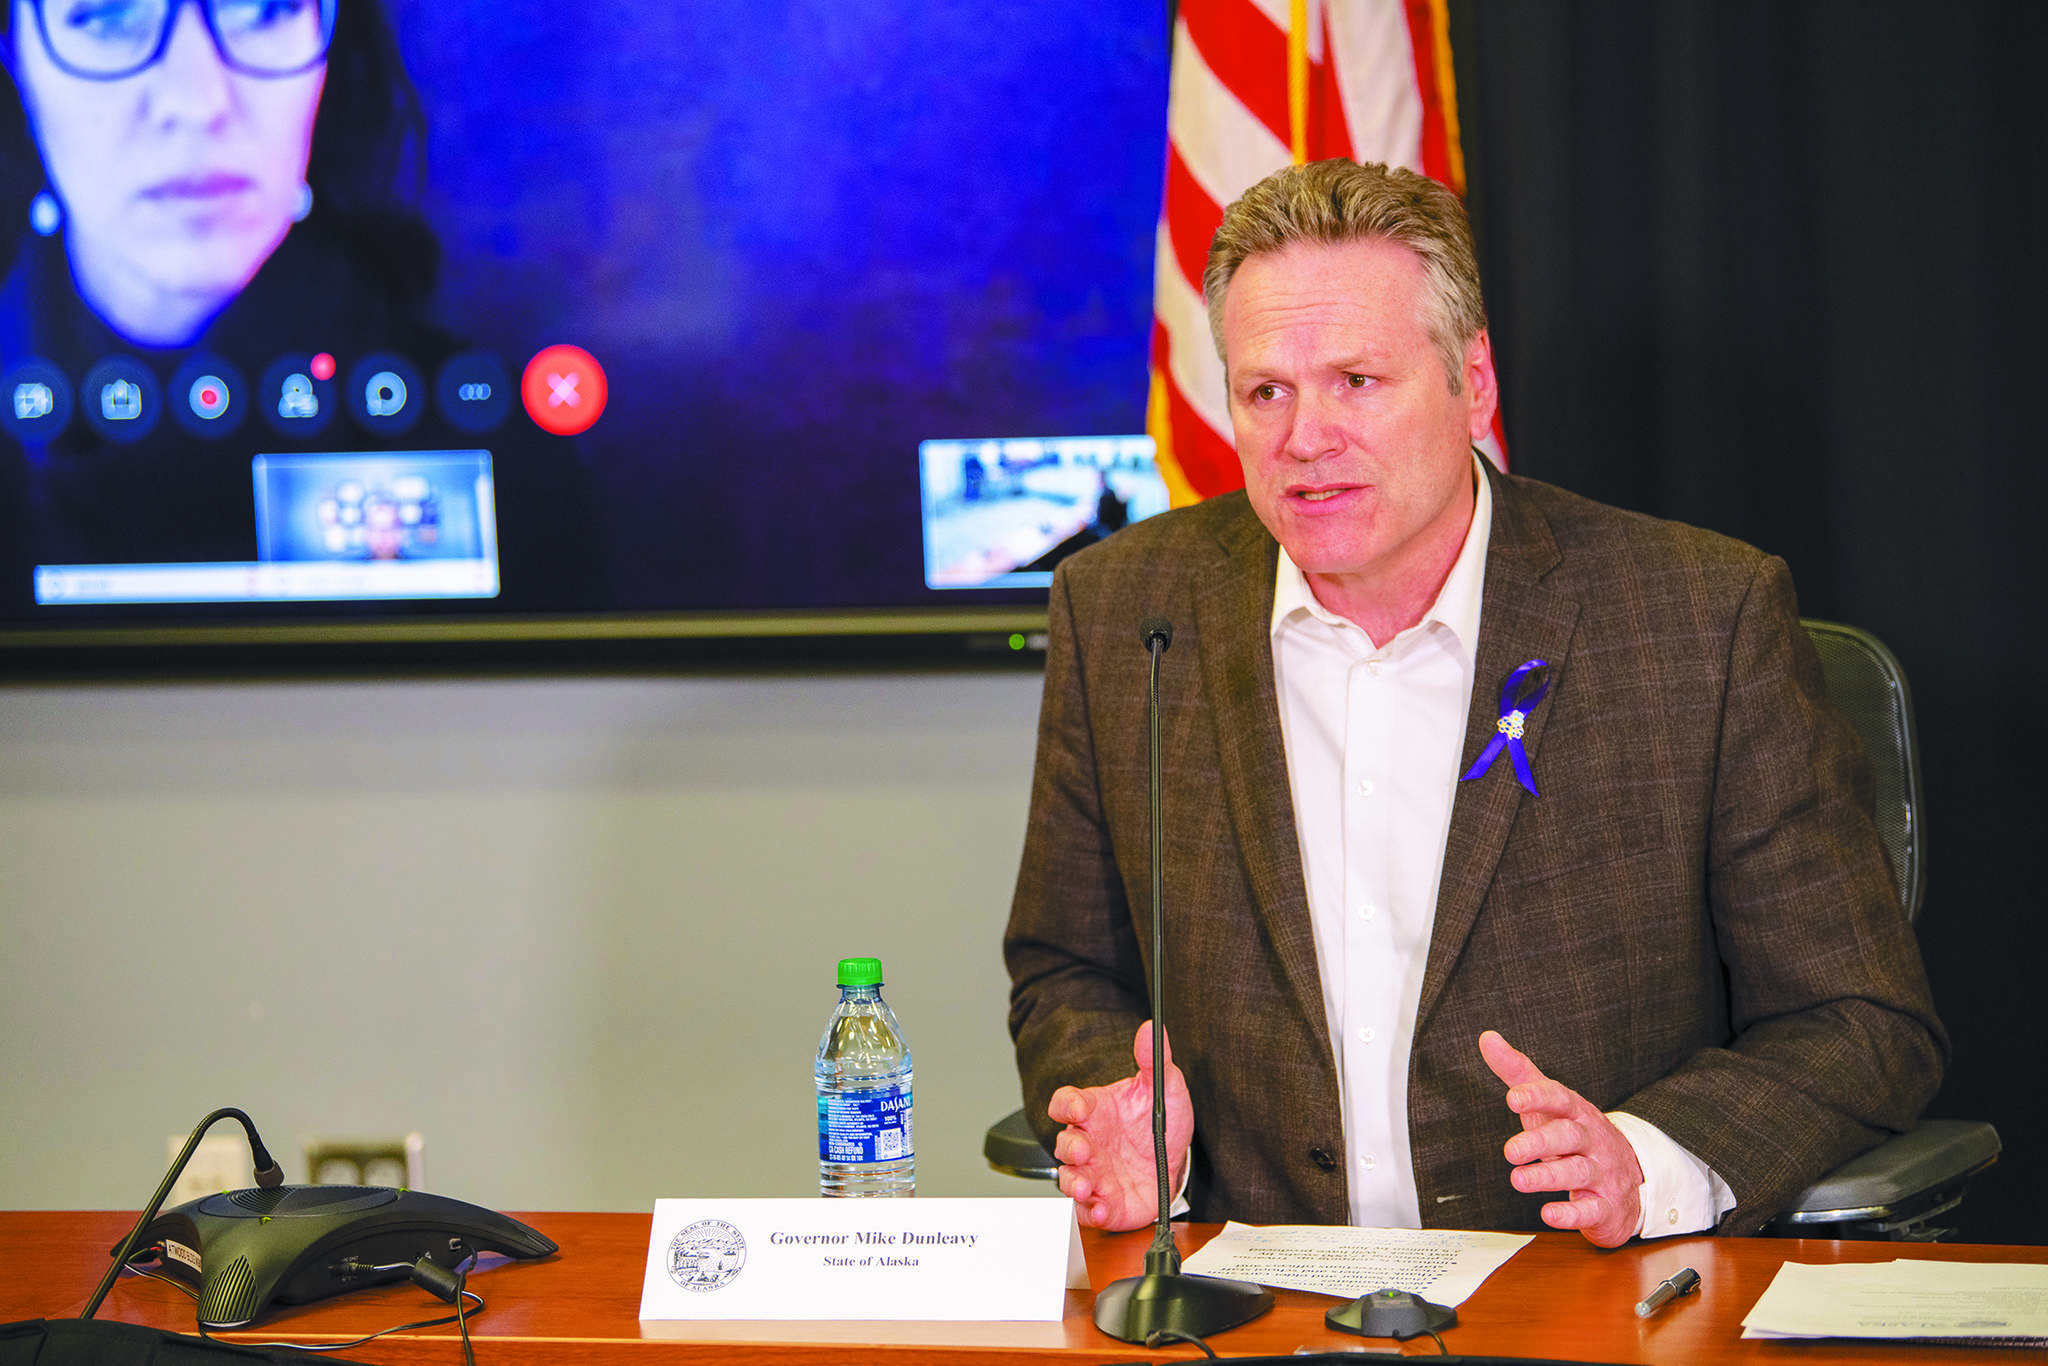 Gov. Mike Dunleavy speaks during a Friday, March 27, 2020 press conference in the Atwood Building in Anchorage, Alaska. (Photo courtesy Office of the Governor)